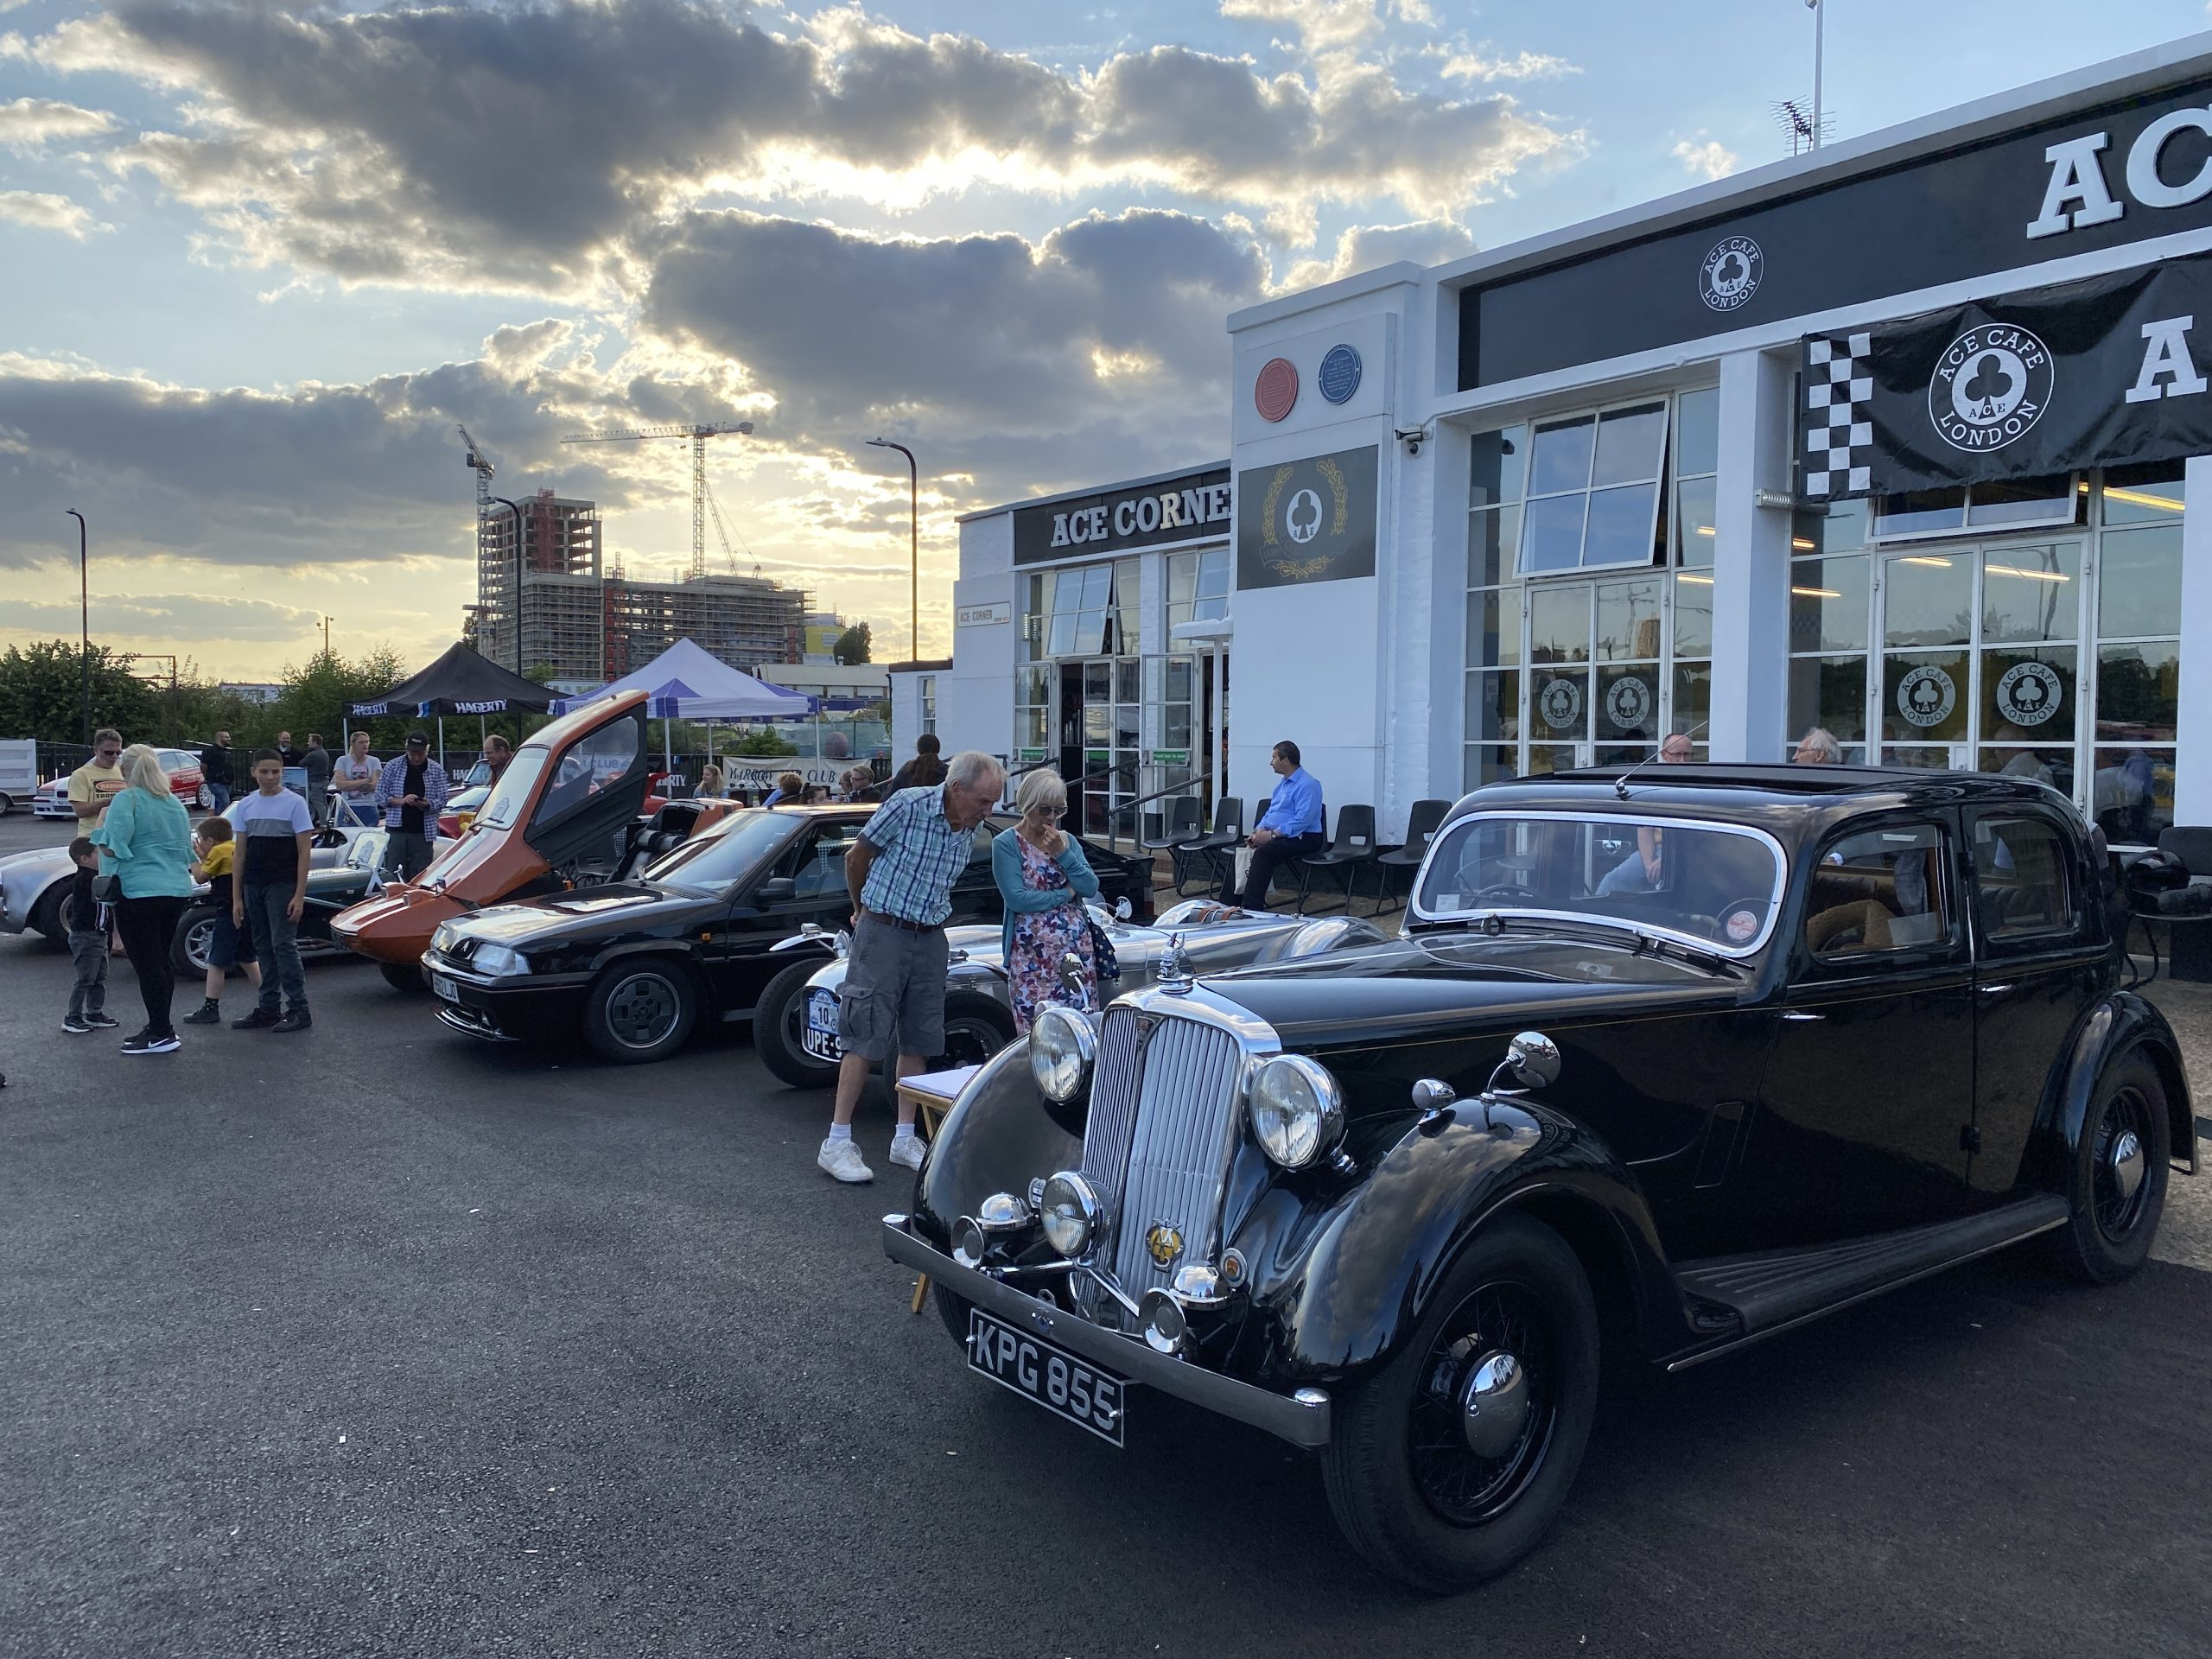 Classic Car Concours at the Ace Cafe 24Aug21